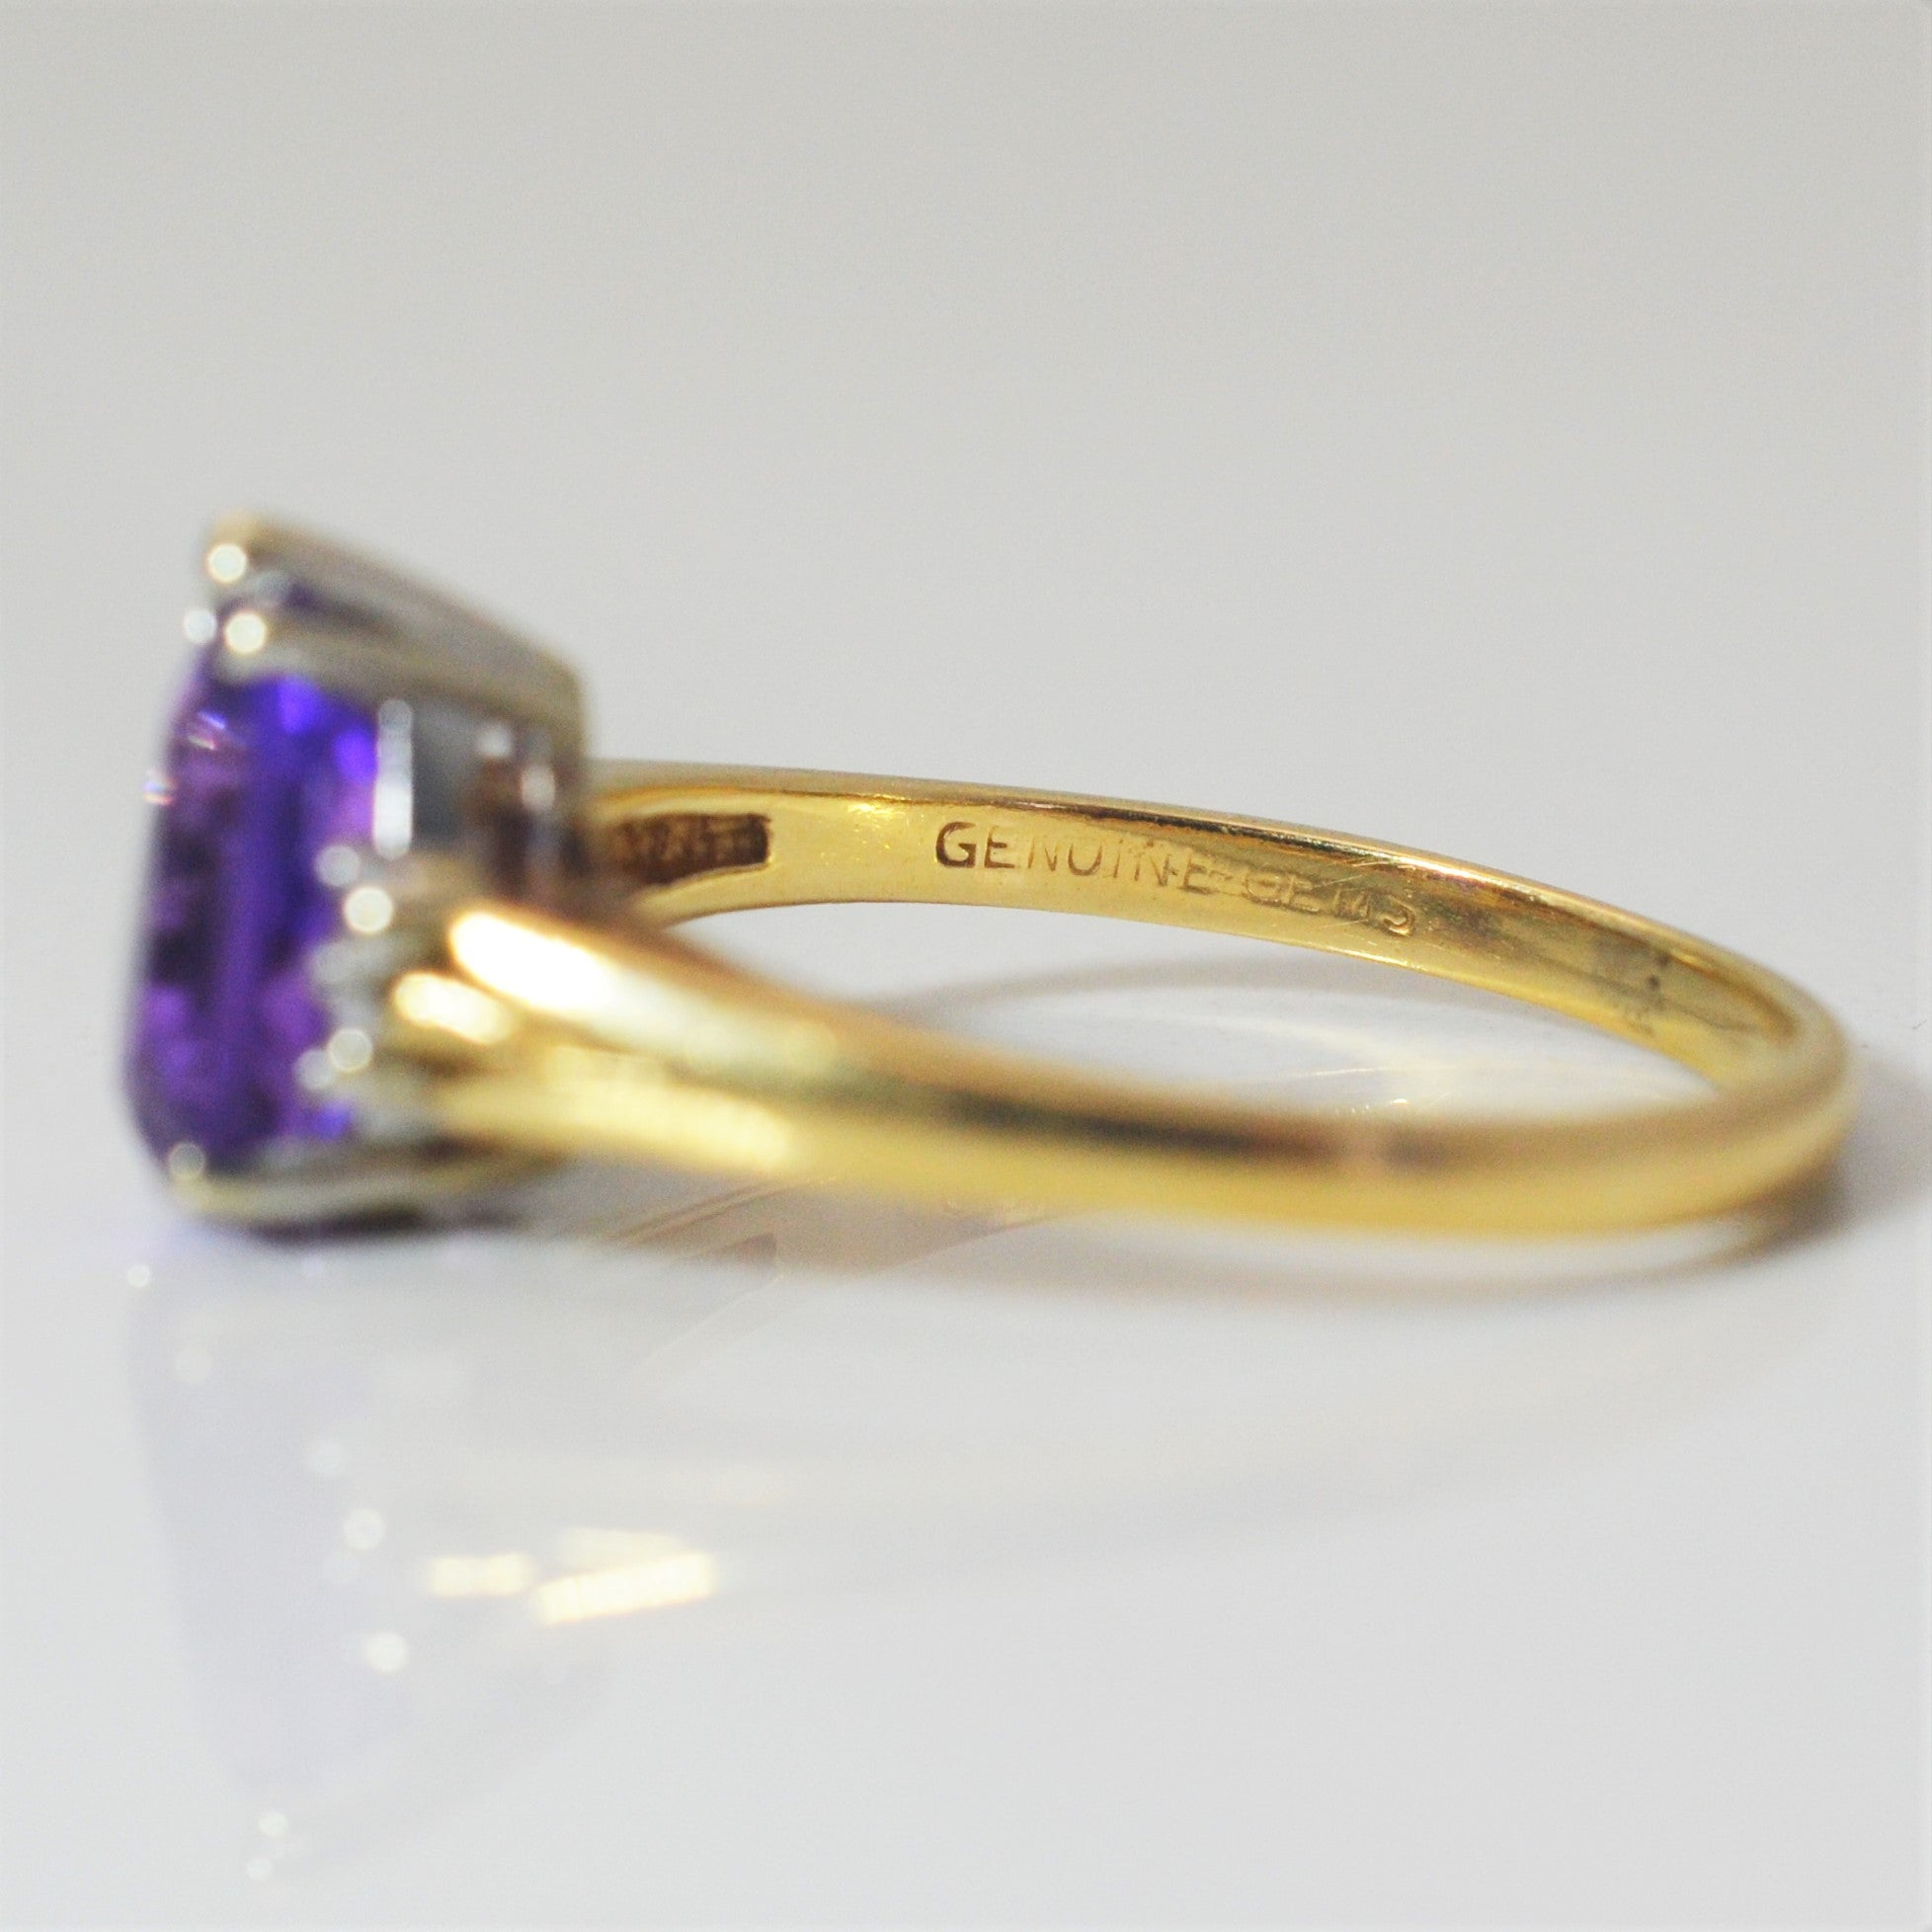 Diamond Accented Pear Cut Amethyst Ring | 0.02 ctw, SZ 7.5 |